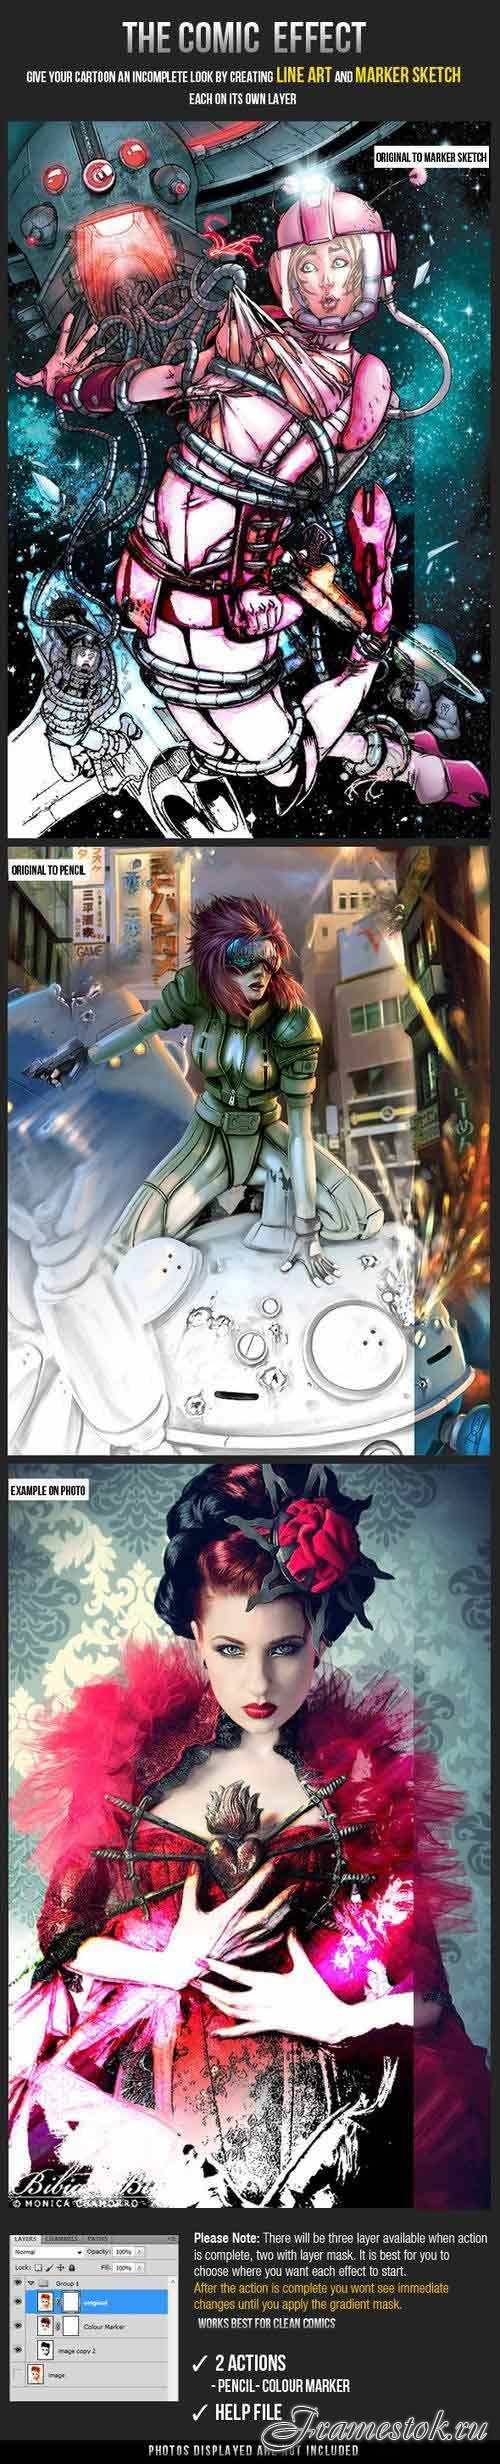 GraphicRiver - The Comic Effect